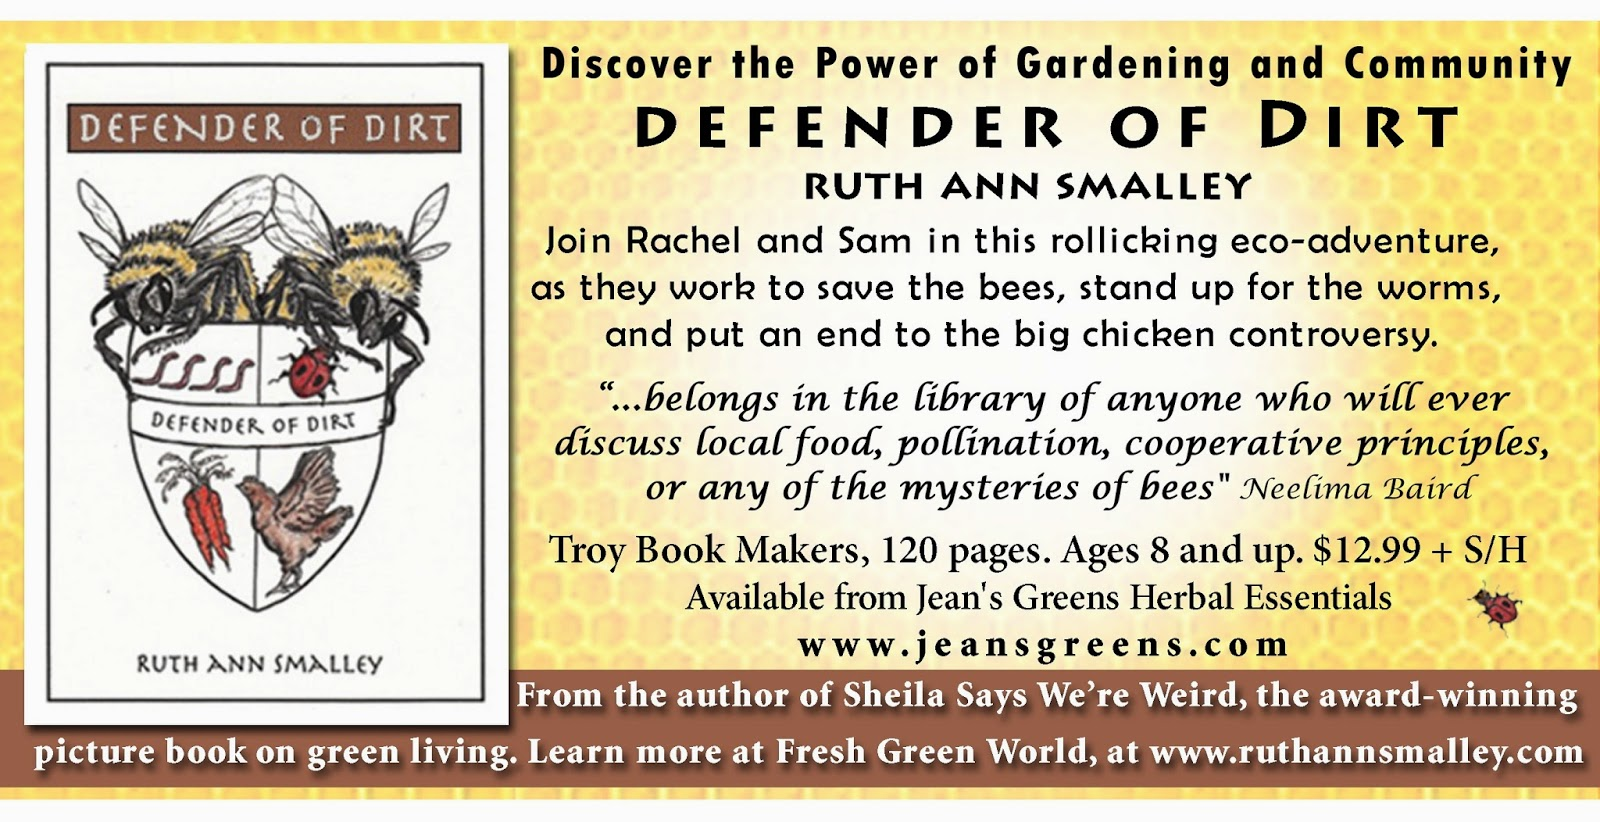 http://www.jeansgreens.com/shopping/books.htm#other